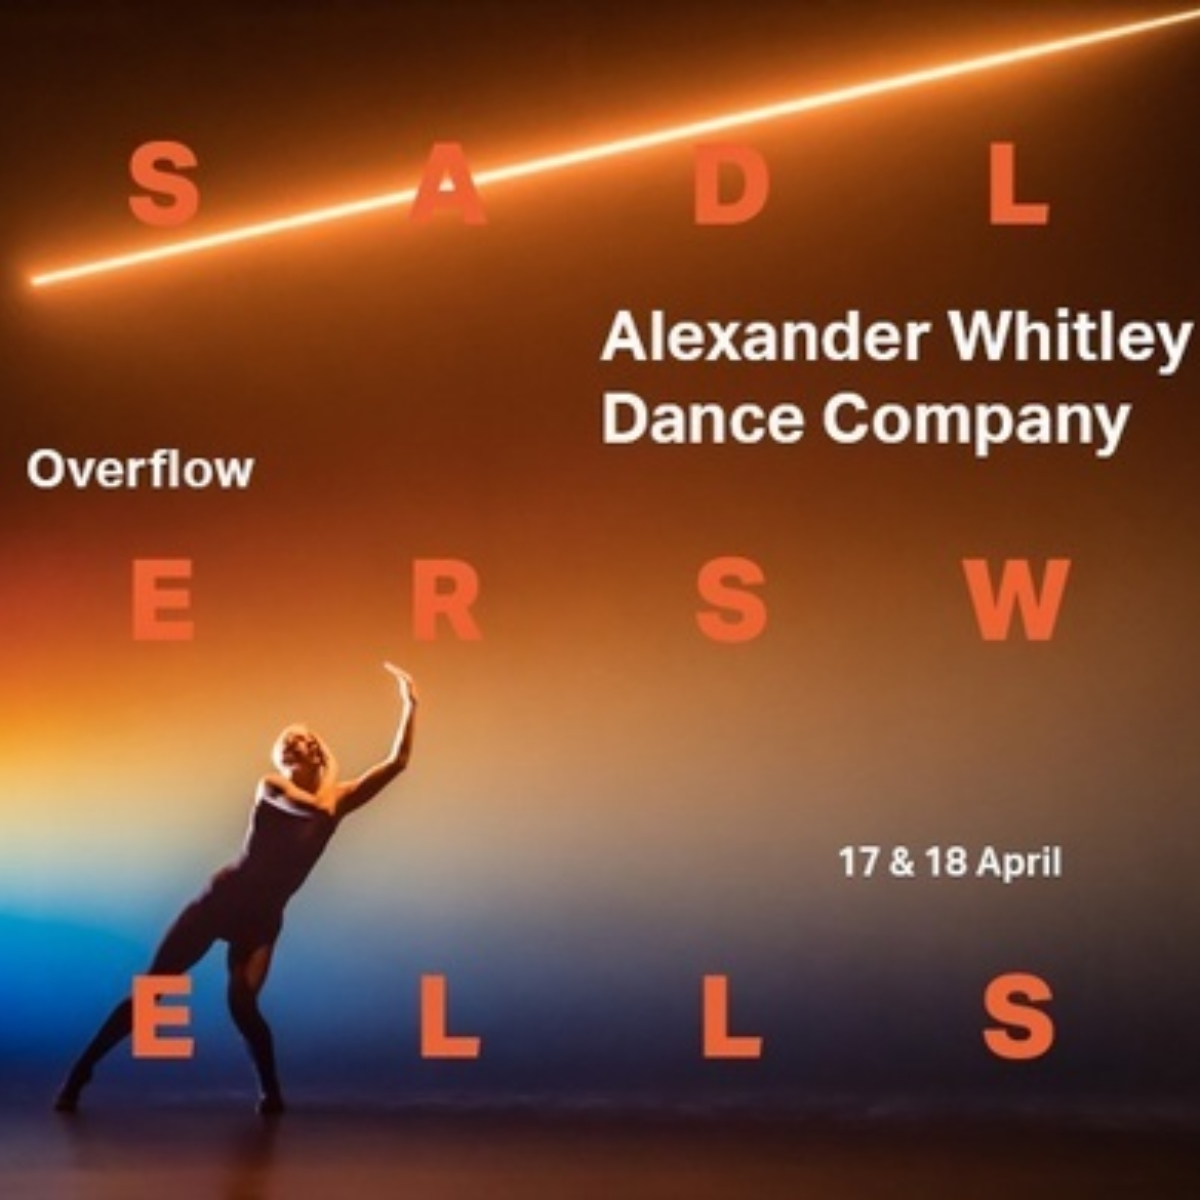 Alexander Whitley Dance Co. Images